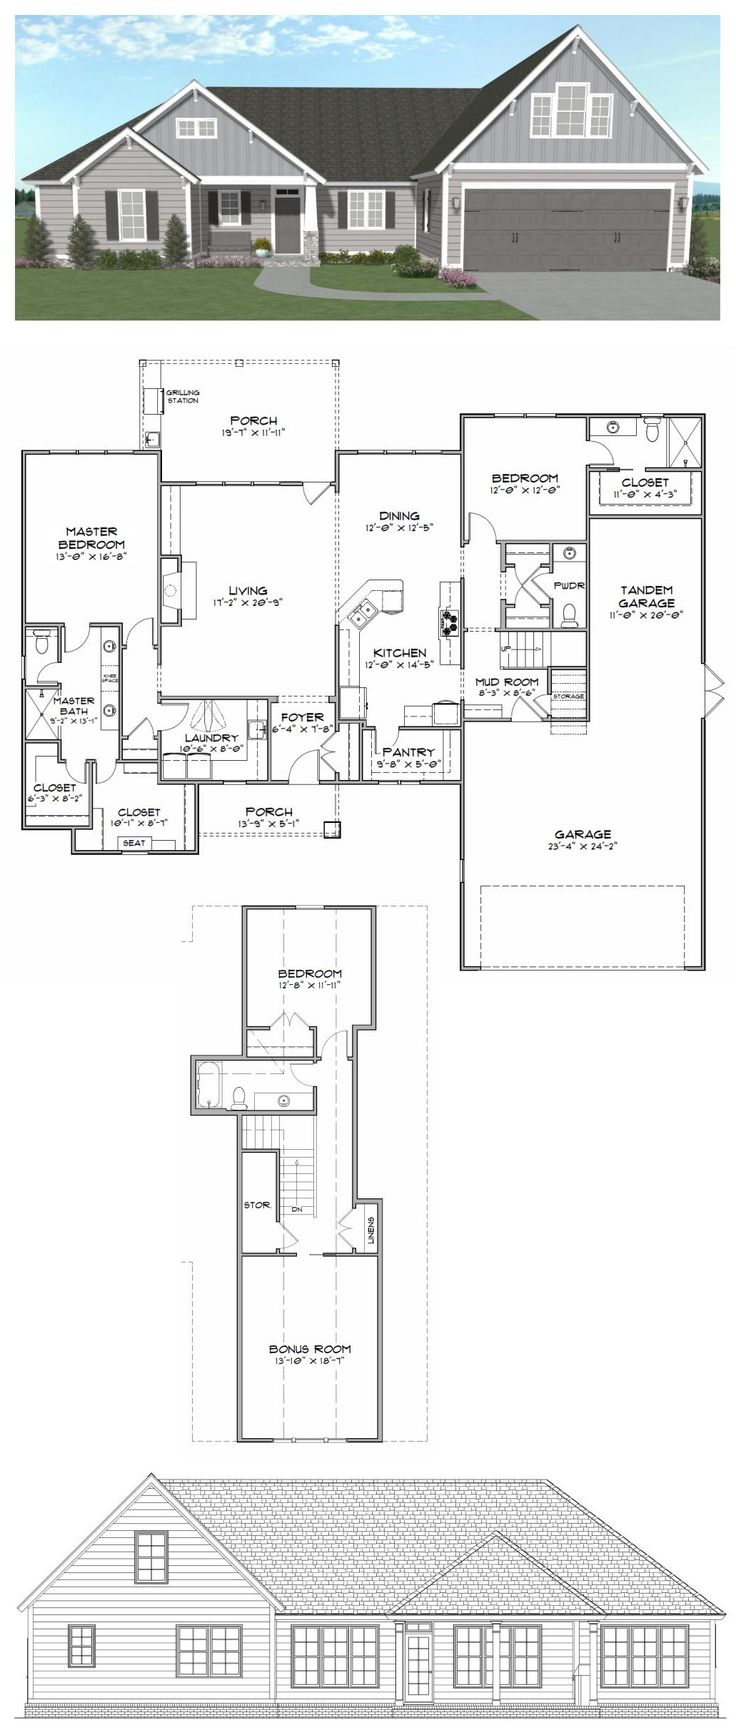 19 best house plans 2000 2800 sq ft images on pinterest for House floor plans 2000 square feet